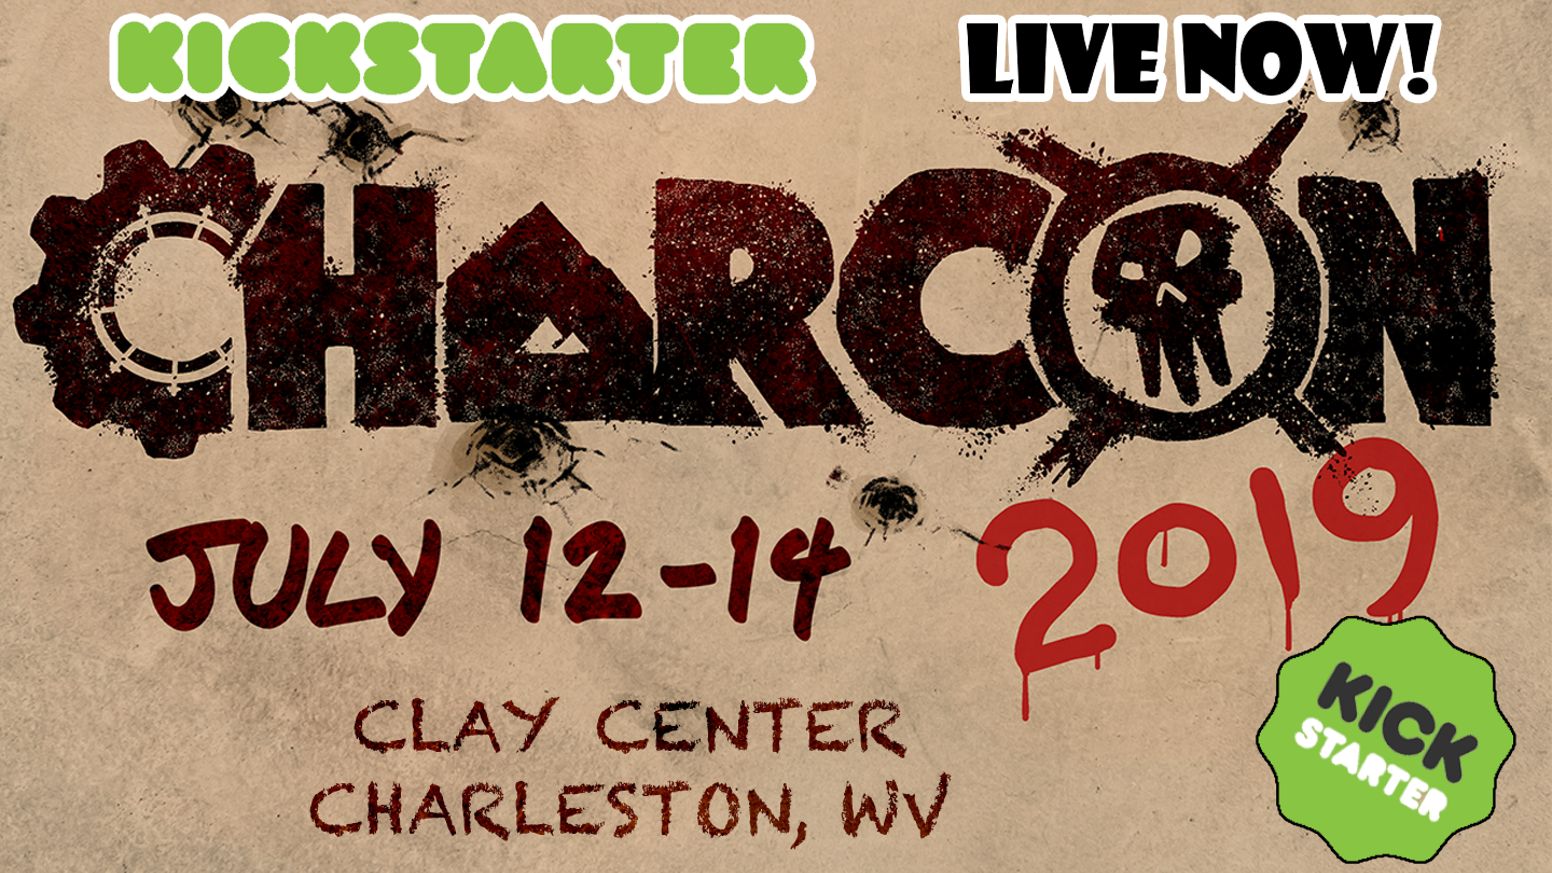 CharCon 2019 - THE West Virginia Gaming Convention by CharCon Game